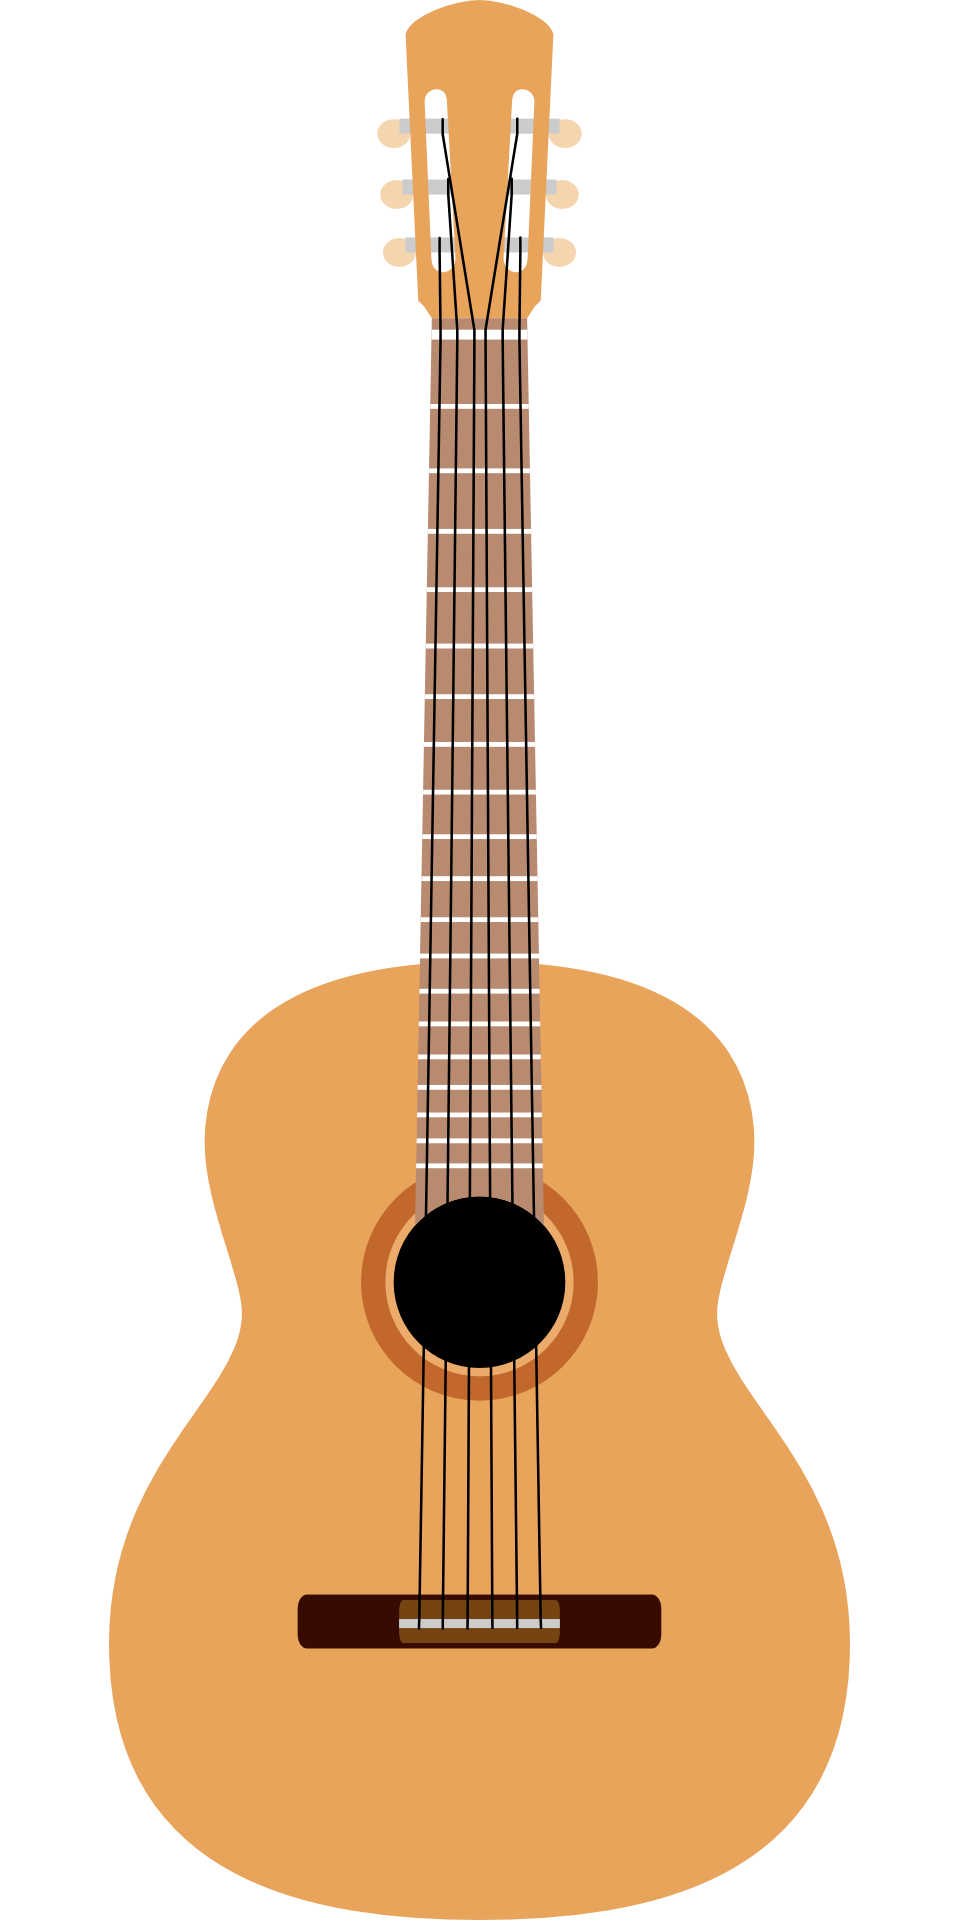 Drawing guitar instrument. Acoustic light brown musical